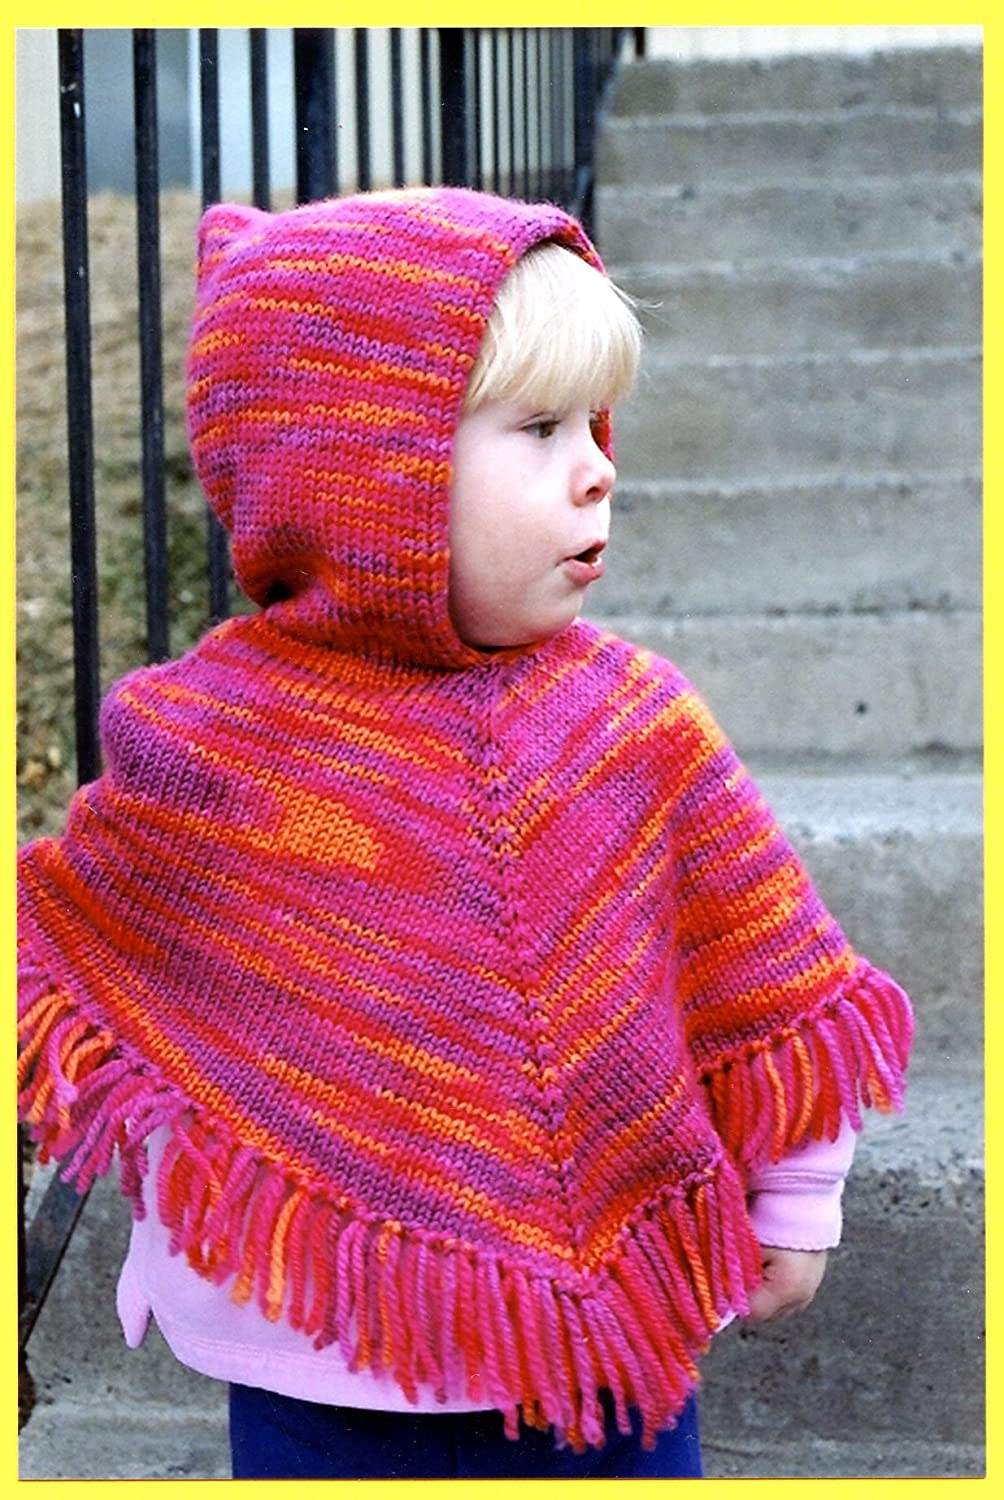 Knitting Pure & Simple Knitting Pattern #243 Children's Poncho